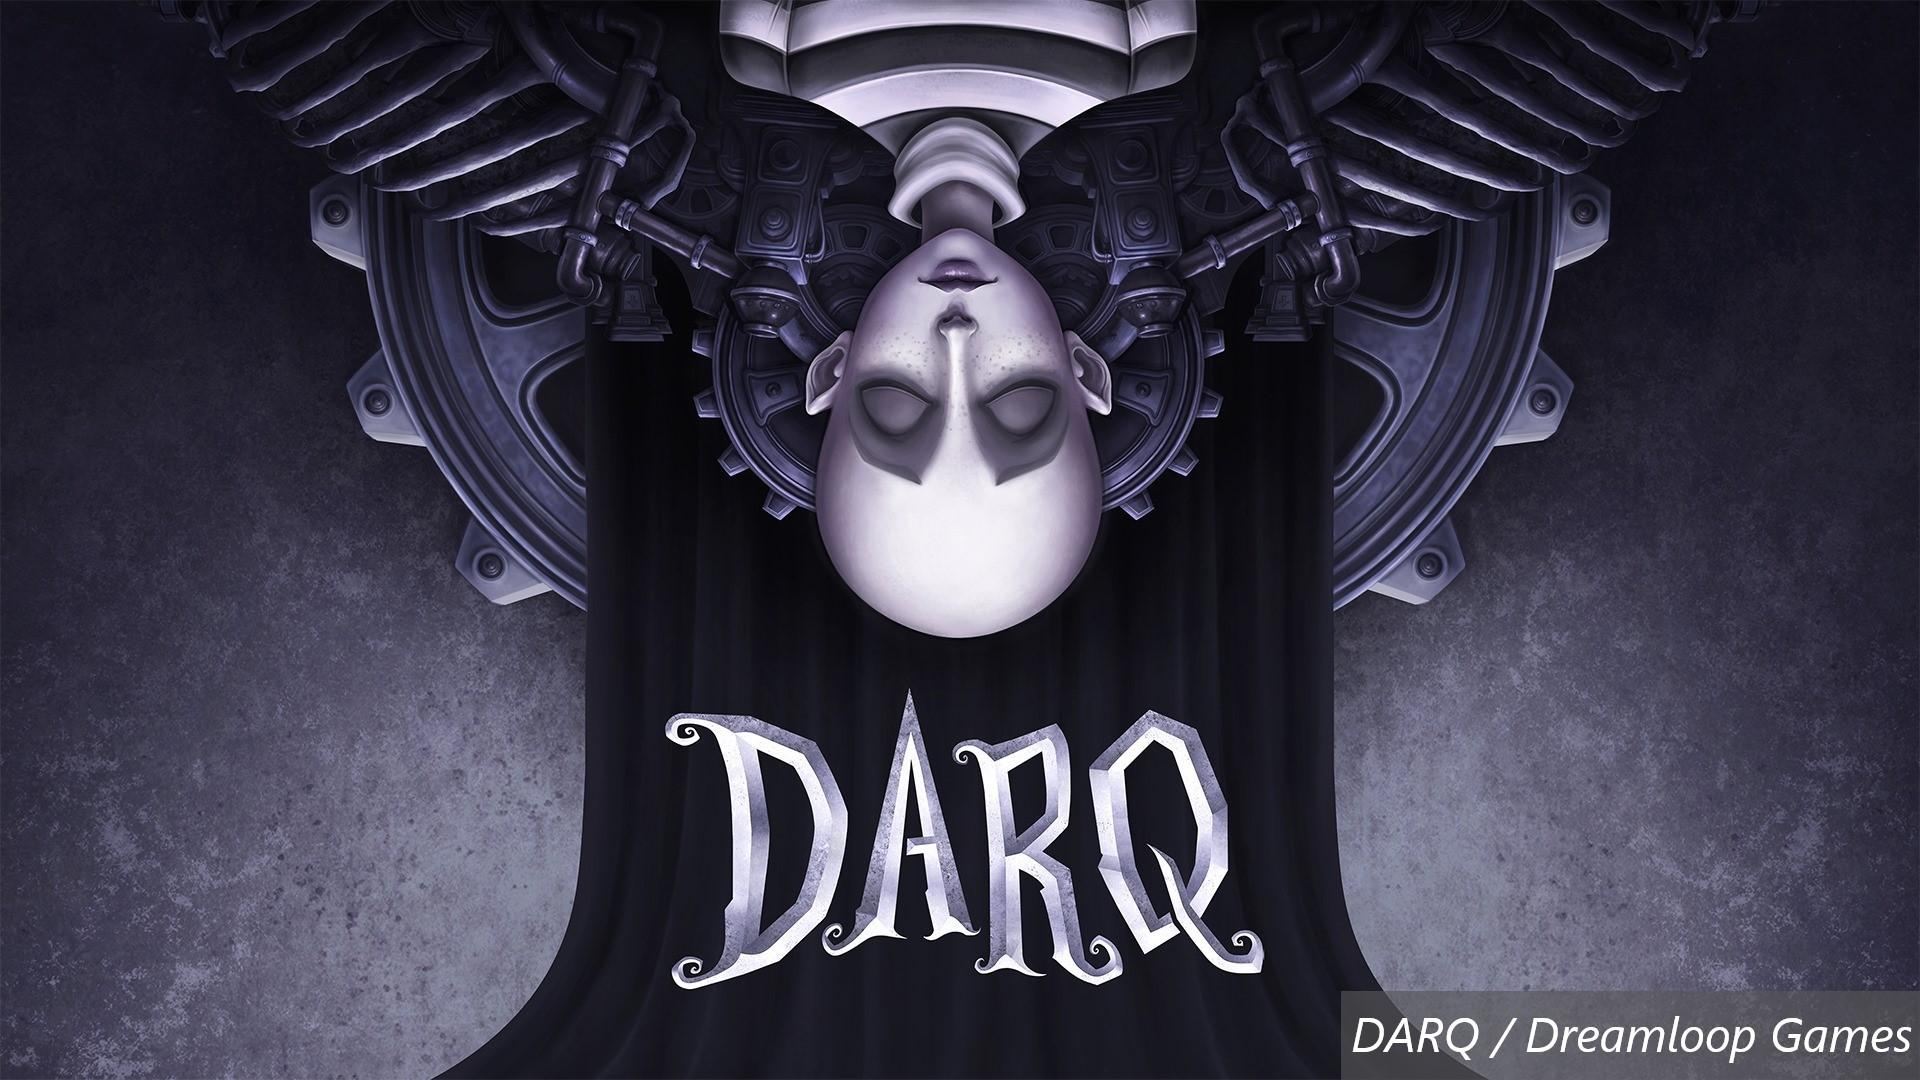 Dreamloop Games DARQ